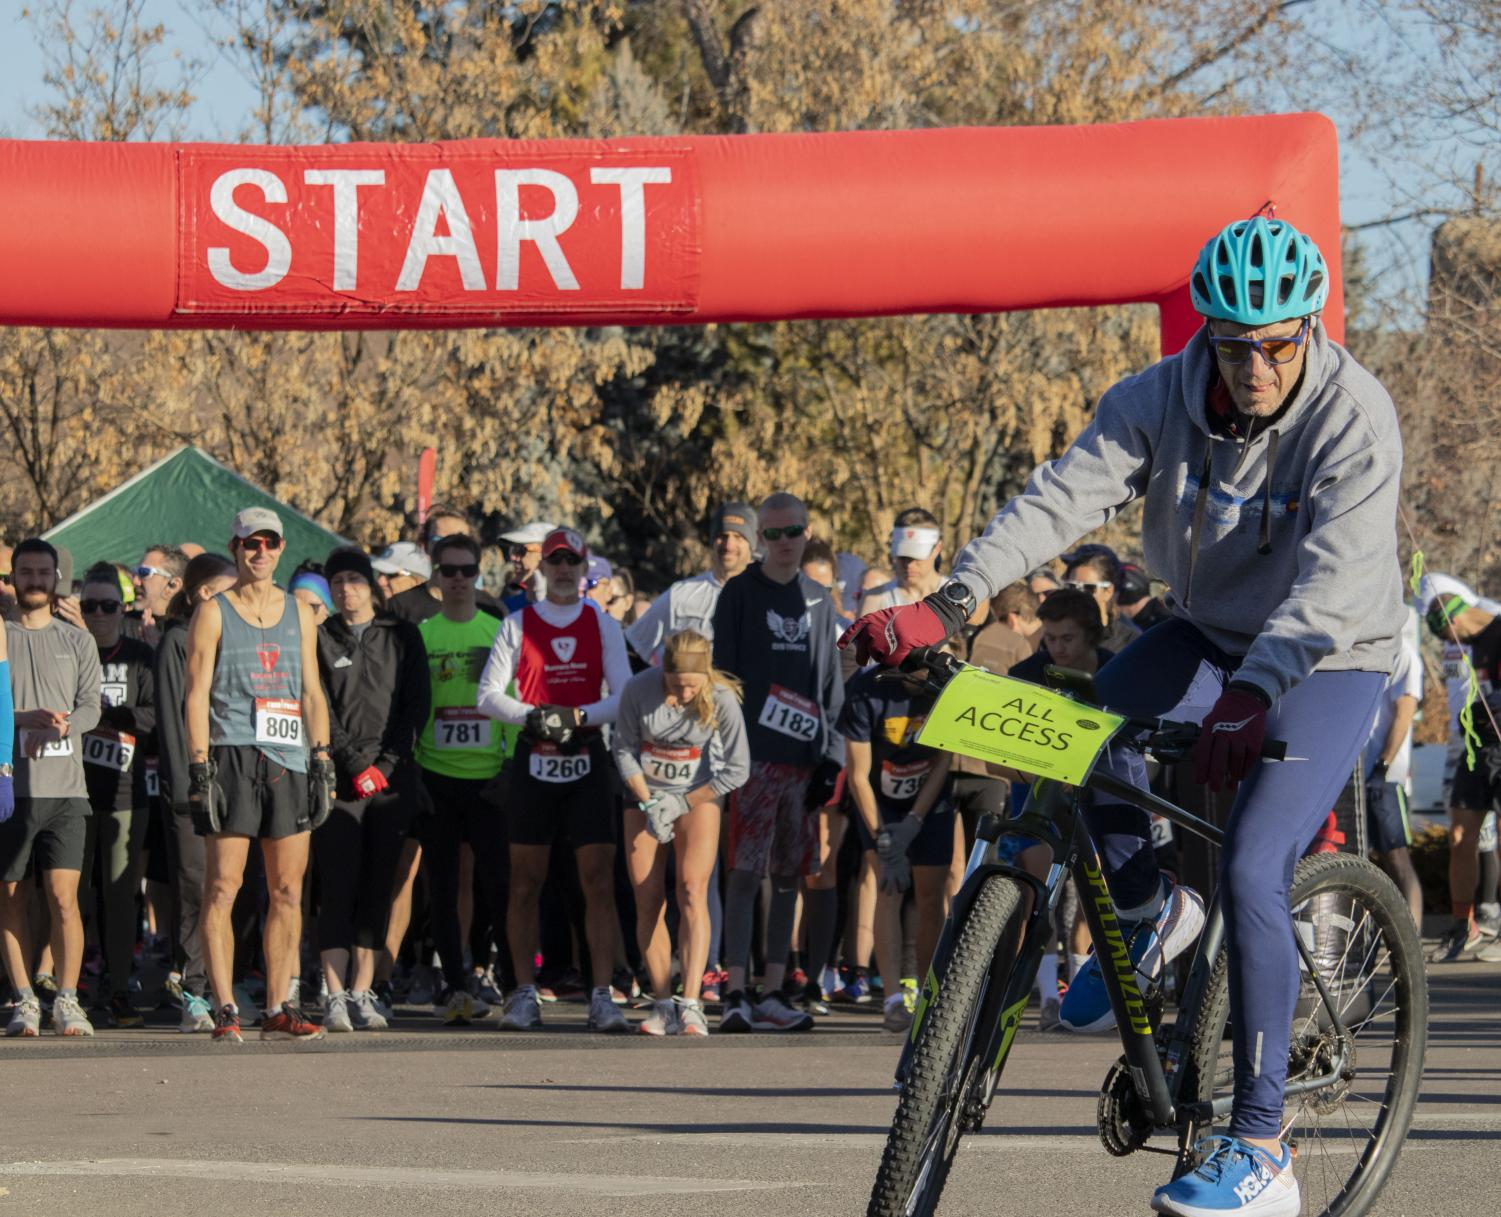 All access biker gets ready to lead the ten mile racers in Hudson Gardens, on Saturday, January 25, 2020. This event was held to benefit the Colorado Coalition for the Homeless.